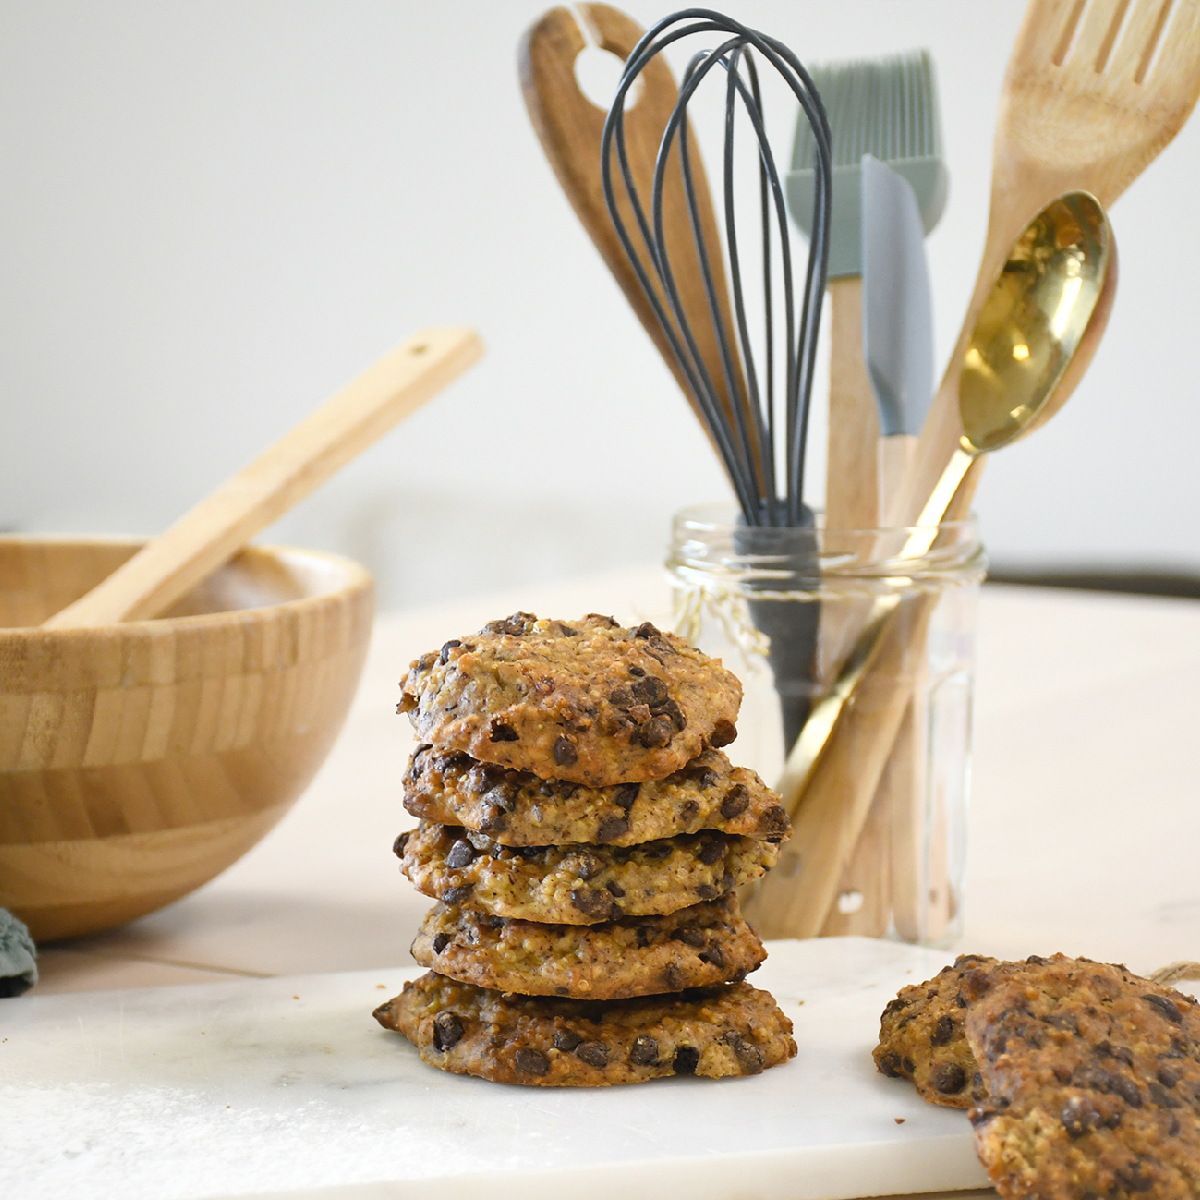 Dare to innovate with our quinoa chocolate chip cookies recipe.